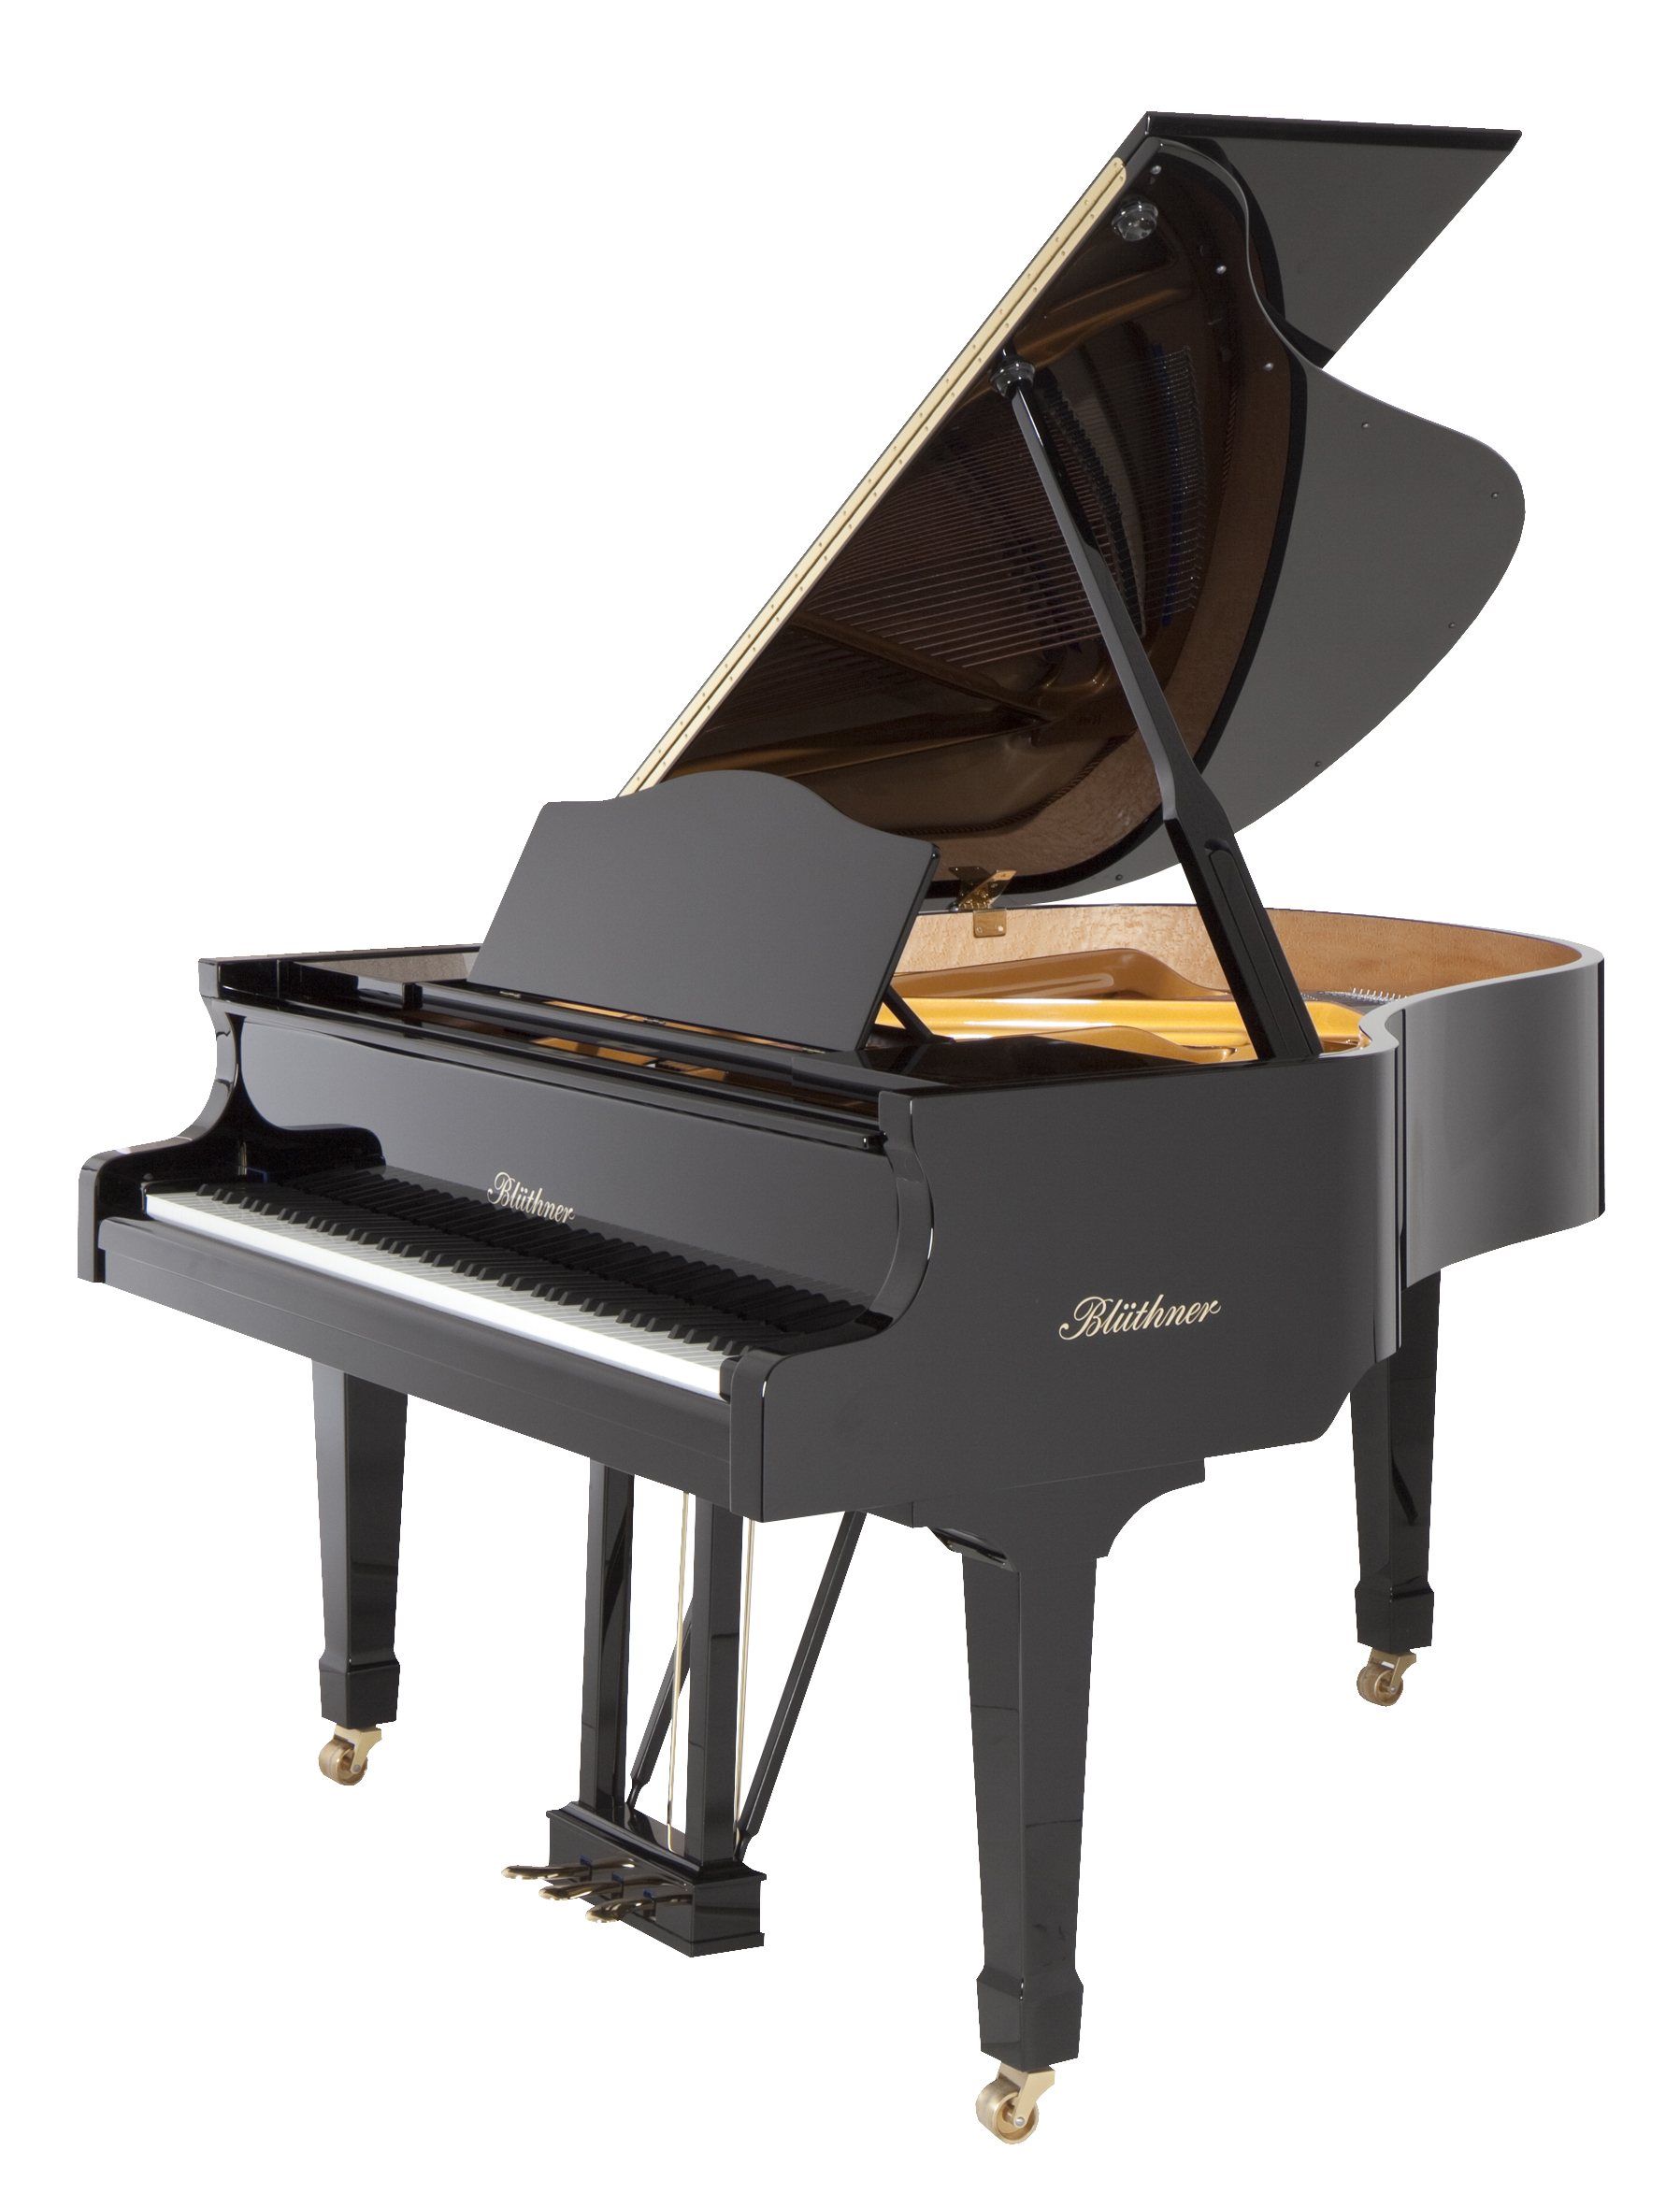 Bluthner Model 10 Grand Piano